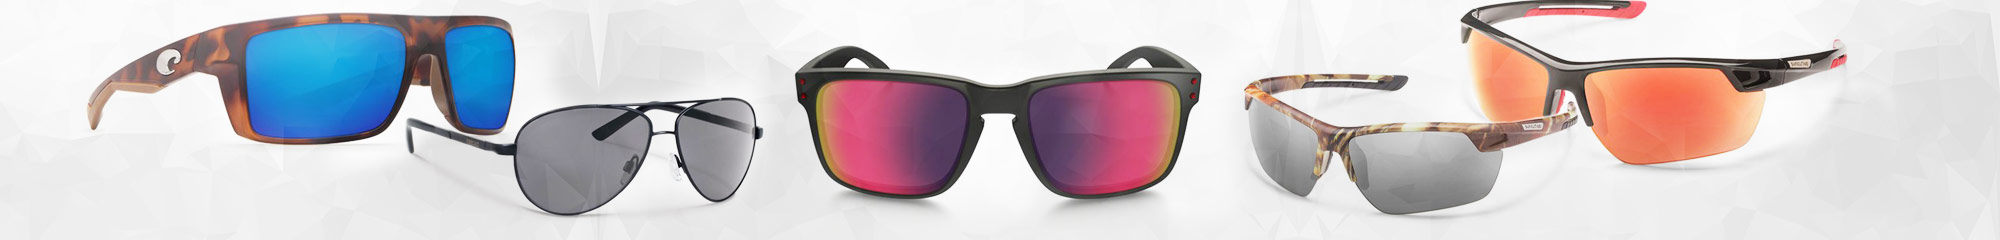 Shop Sunglasses